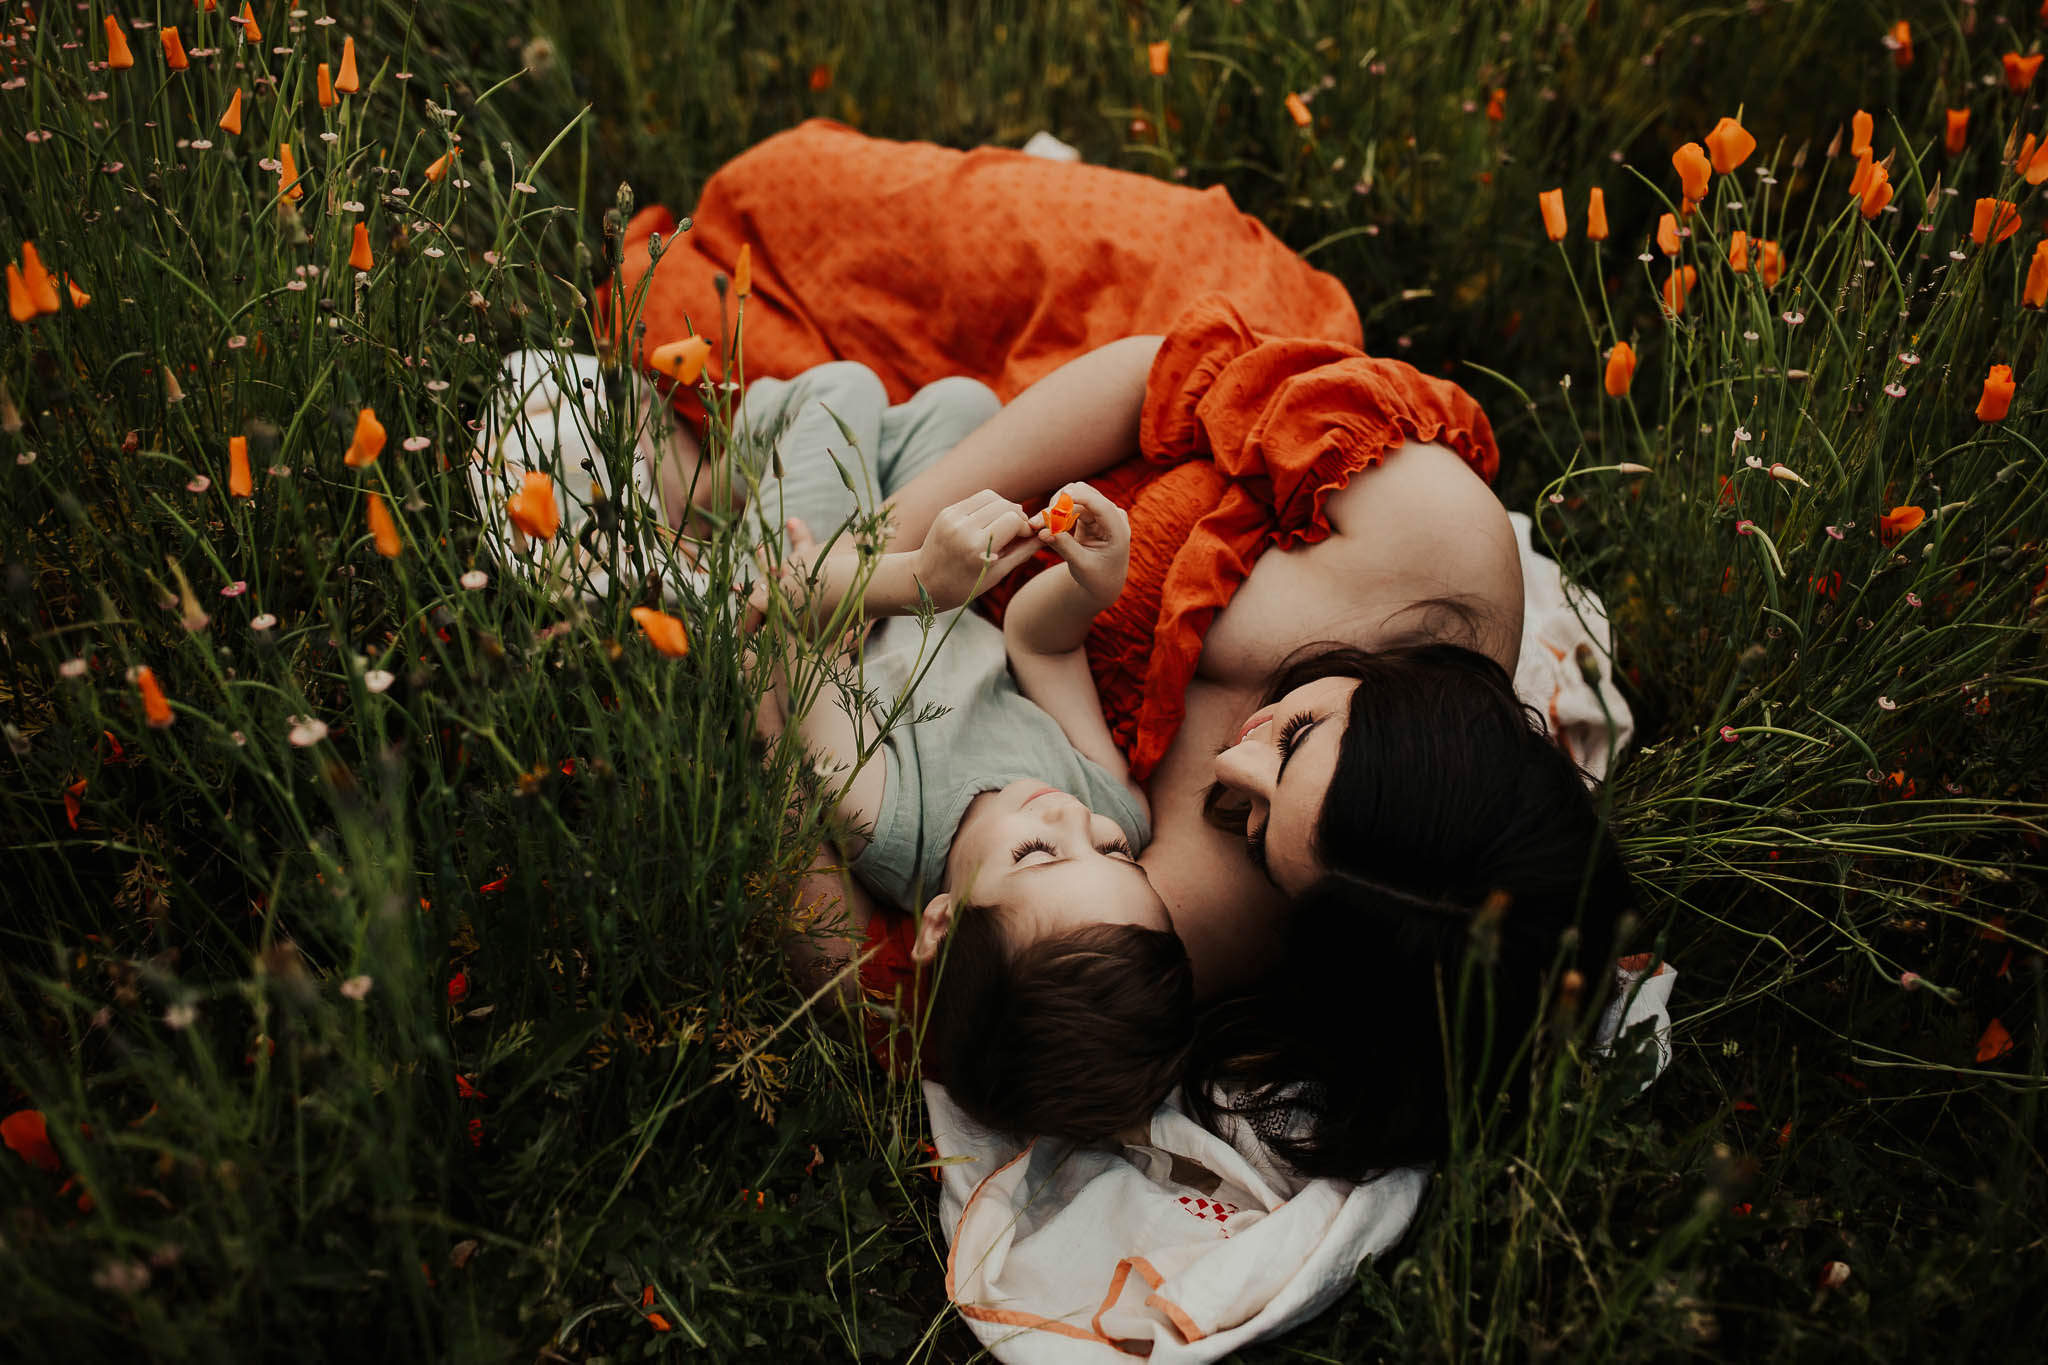 Mom and son laying on blanket in orange poppies